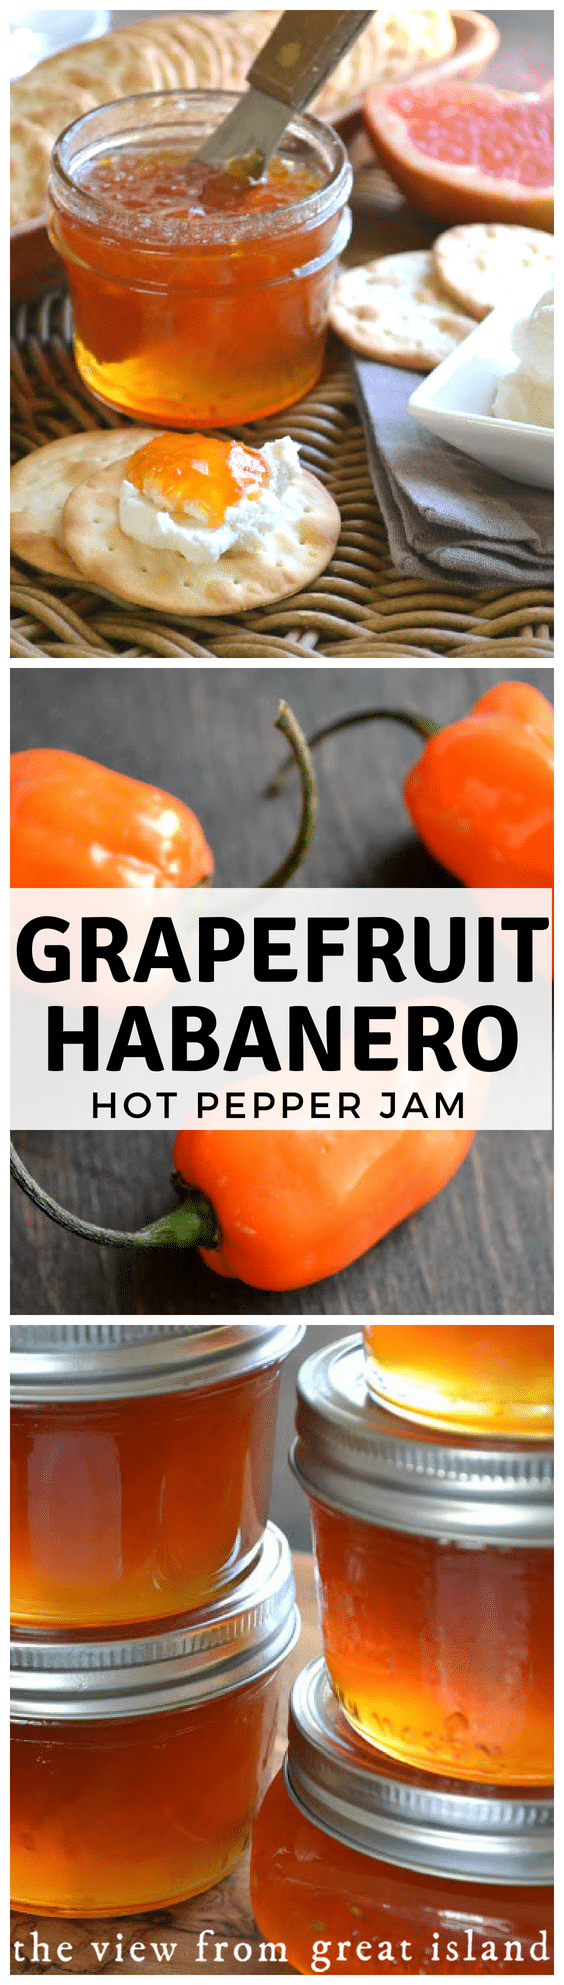 Pink Grapefruit Habanero jam is a unique hot pepper jam with anirresistiblesweet hot flavor...pair it with some cream cheese and crackers for the best appetizer ever. #appetizer #jam #recipe #easy #grapefruit #habanero #smallbatch #refrigerator #freezer #citrus #jelly